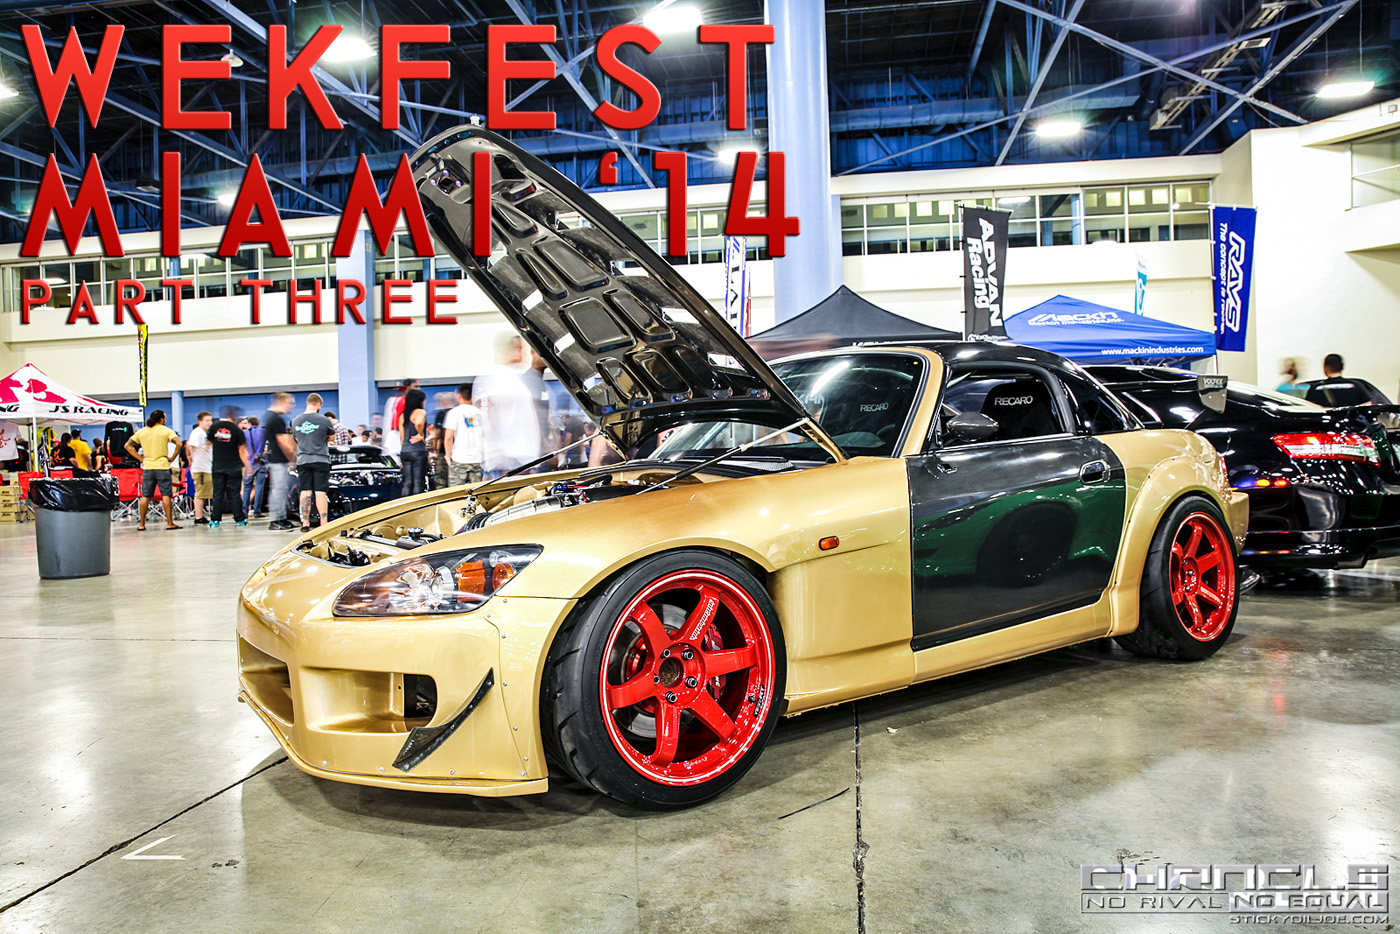 Wekfest Miami 2014 Coverage…Part 3 of 3…